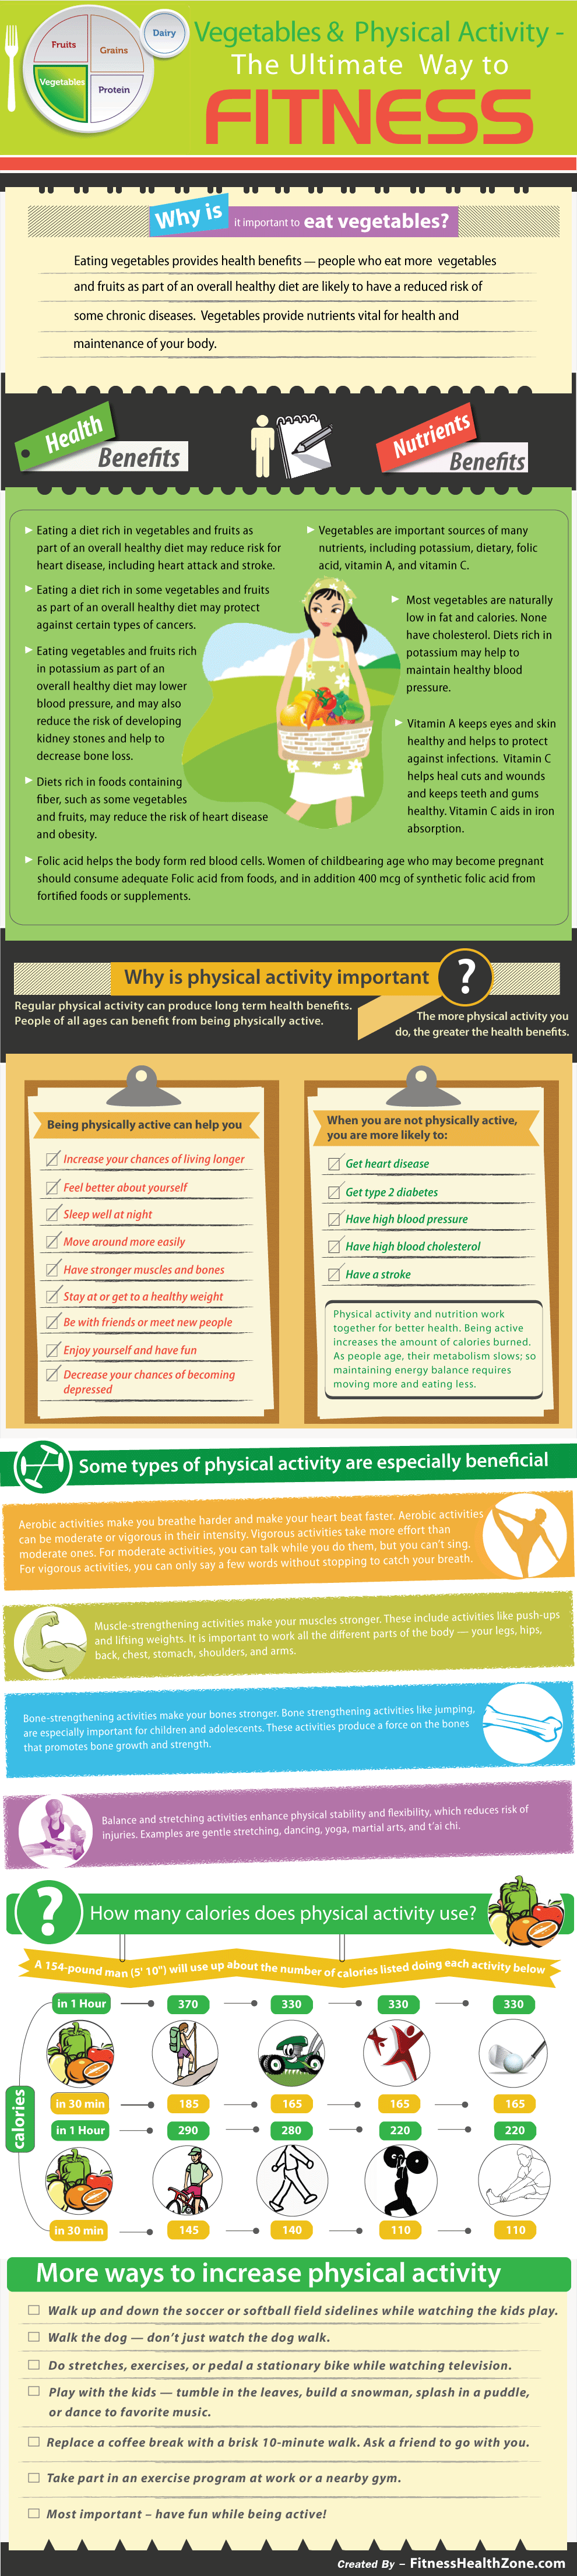 Vegetables and Physical Activity for Health infographic